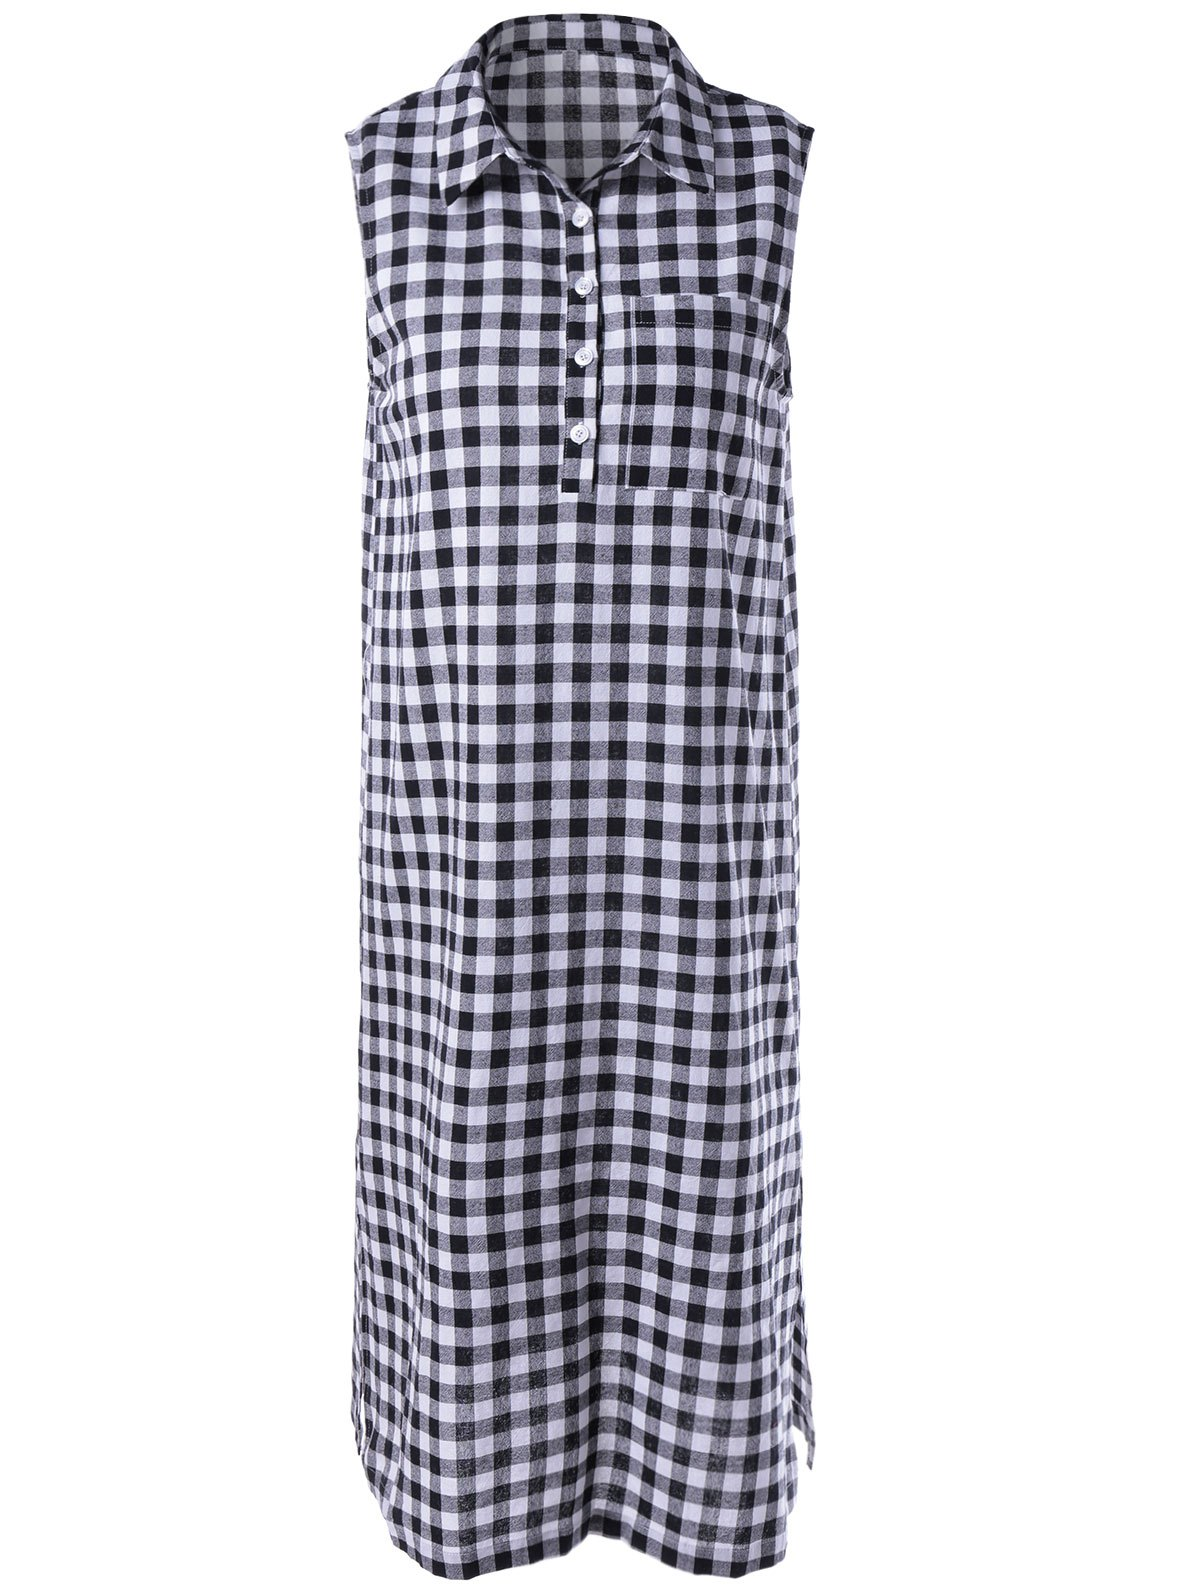 Fashionable Shirt Lattice Dress For WomanWomen<br><br><br>Size: S<br>Color: WHITE AND BLACK